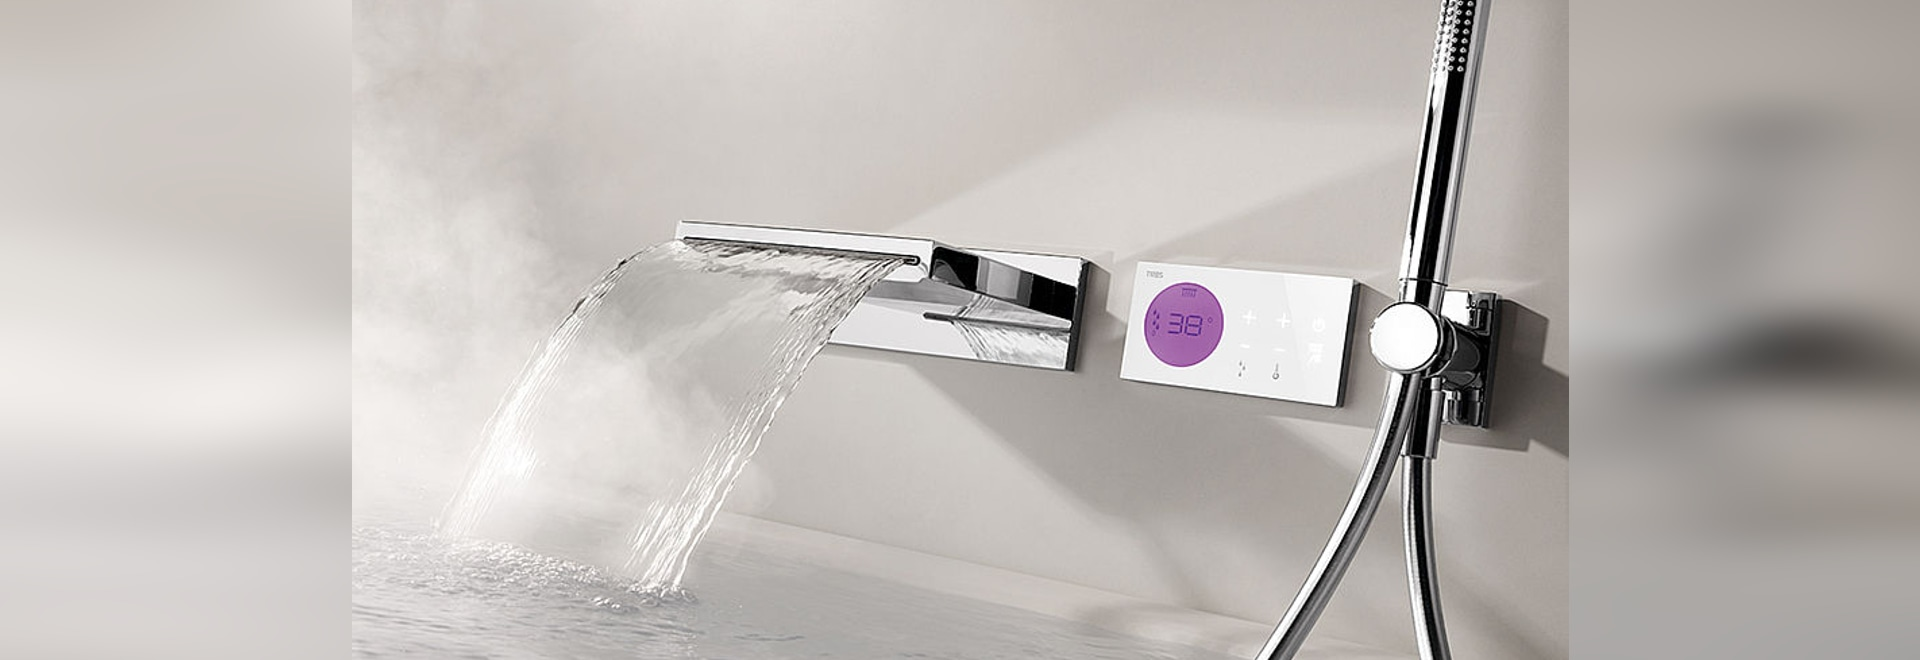 SHOWER TECHNOLOGY®: The revolution in showers